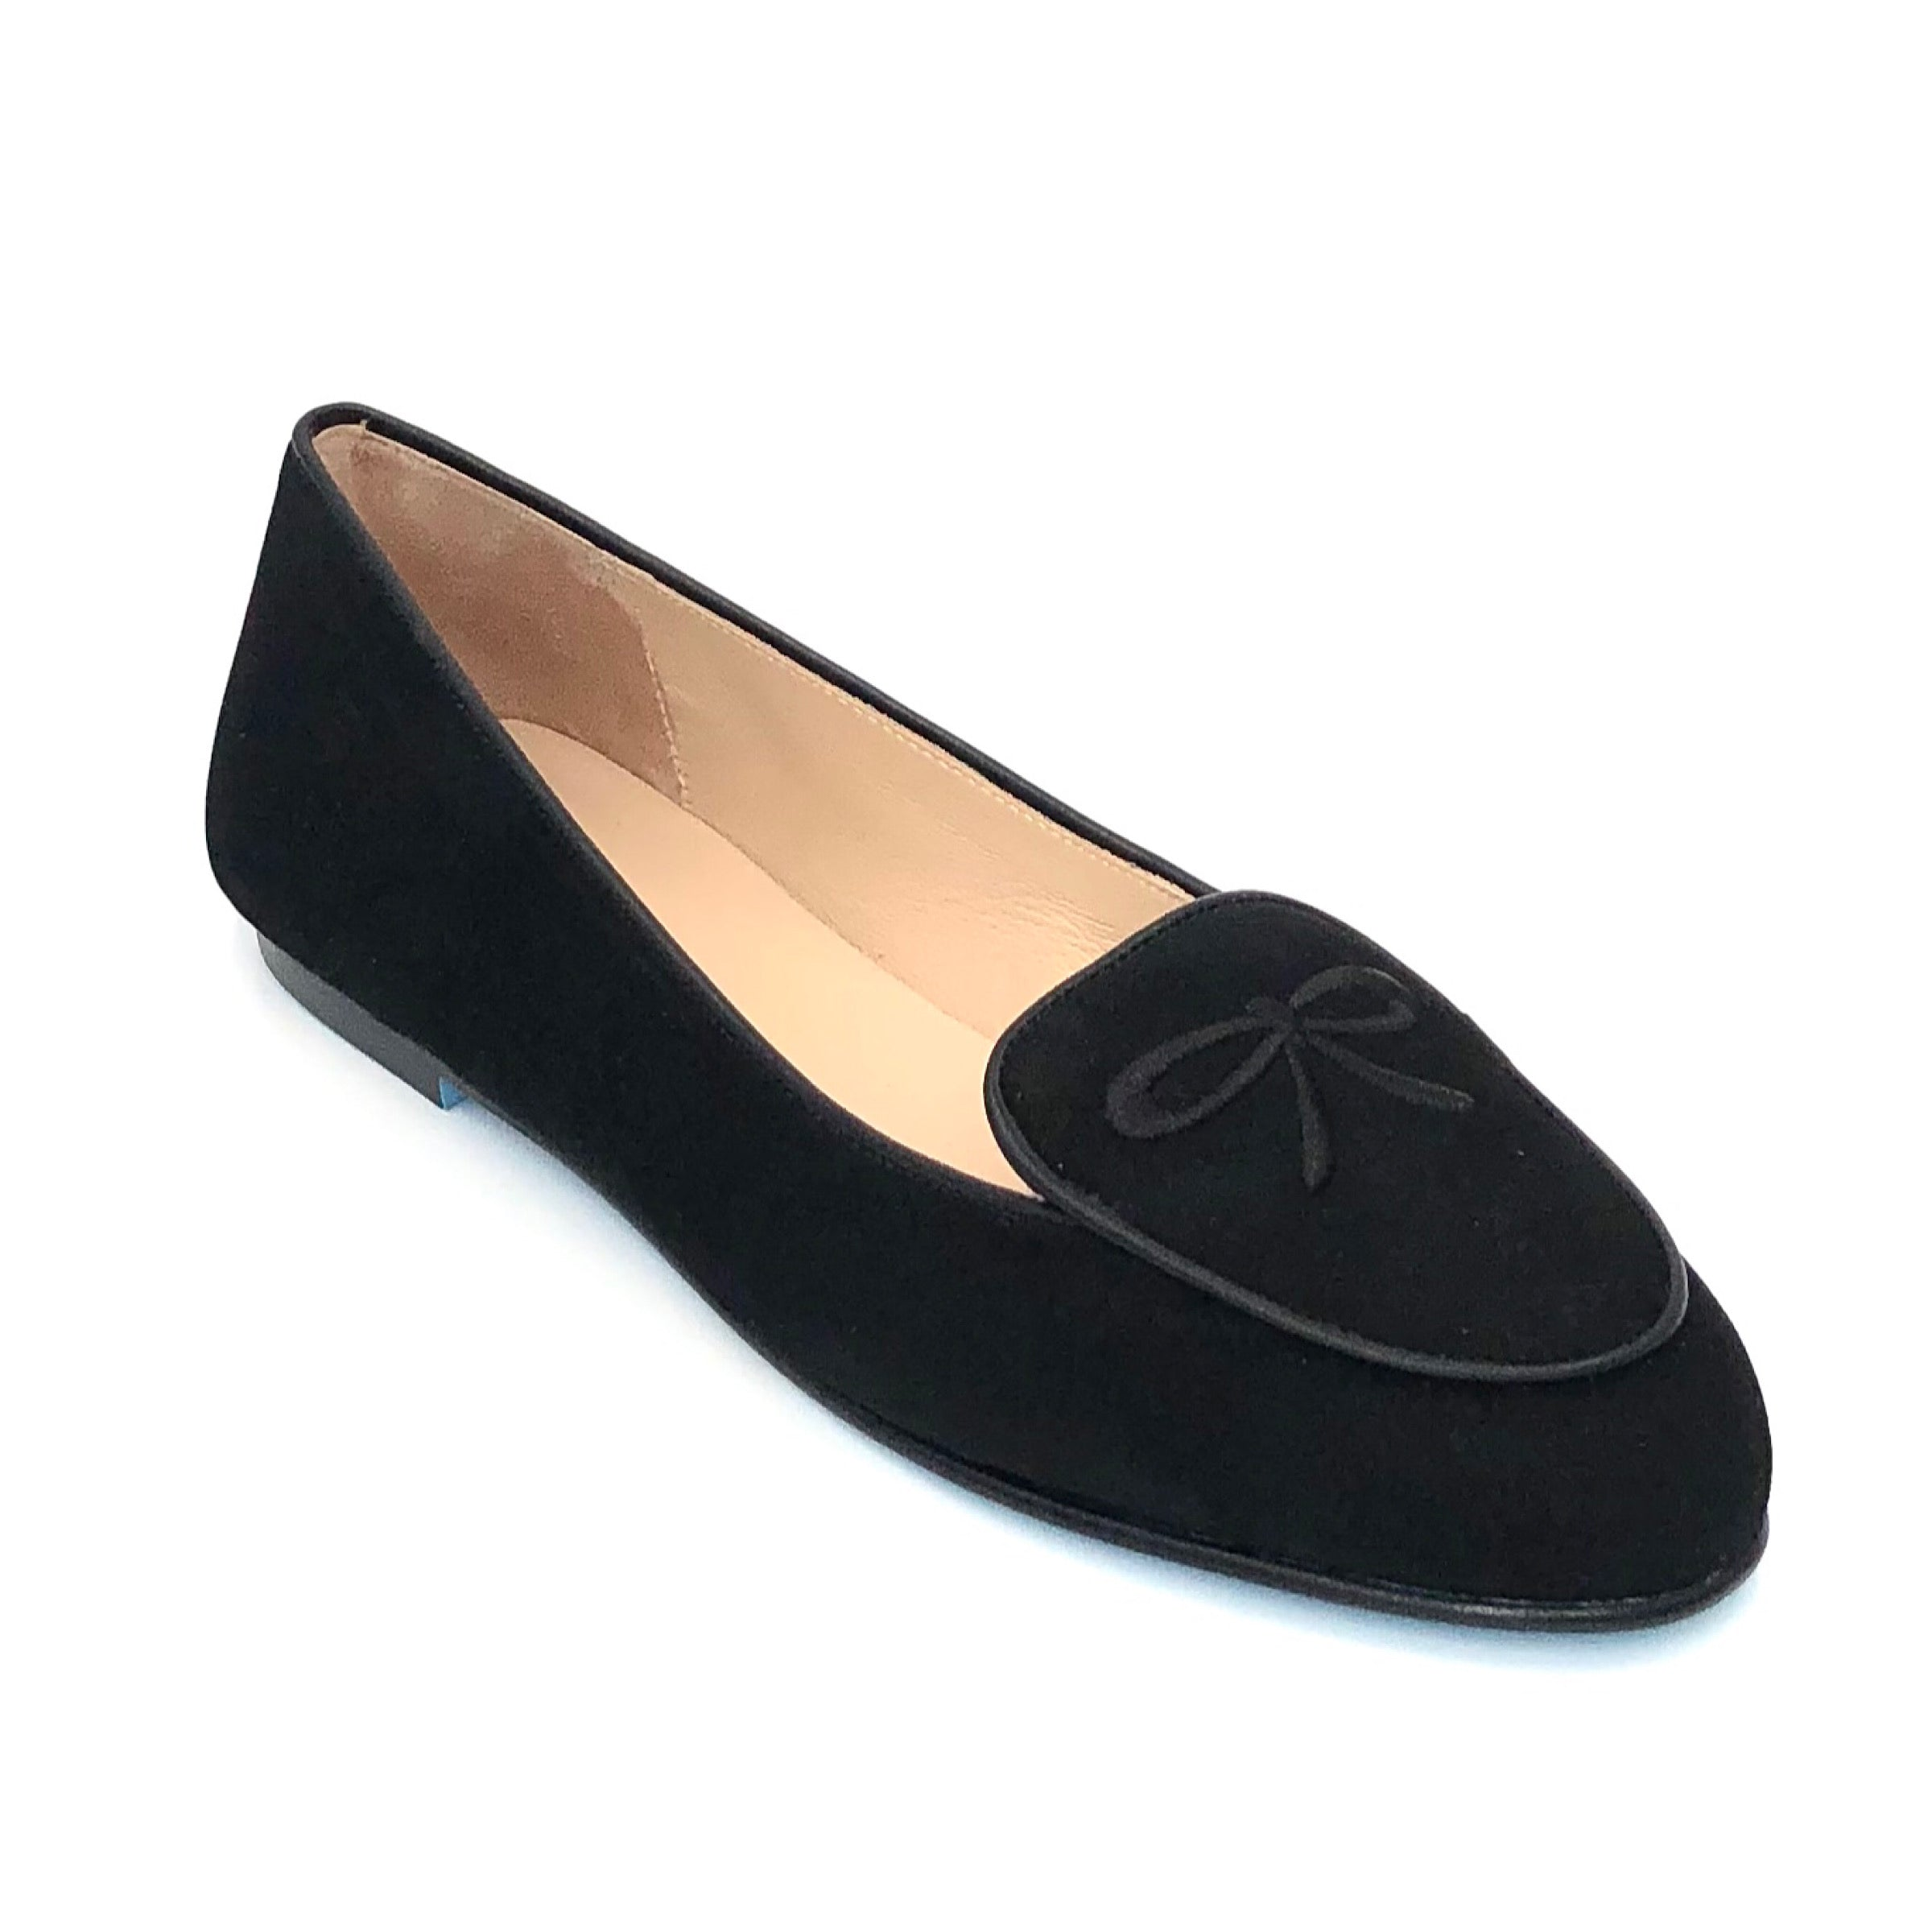 Madison The Belgium Loafer in Black. This French Sole x Nicky Hilton modern take on the classic Belgium loafer is both stylish & sophisticated. Suede upper with embroidery, leather lining & leather sole. Made in Spain.